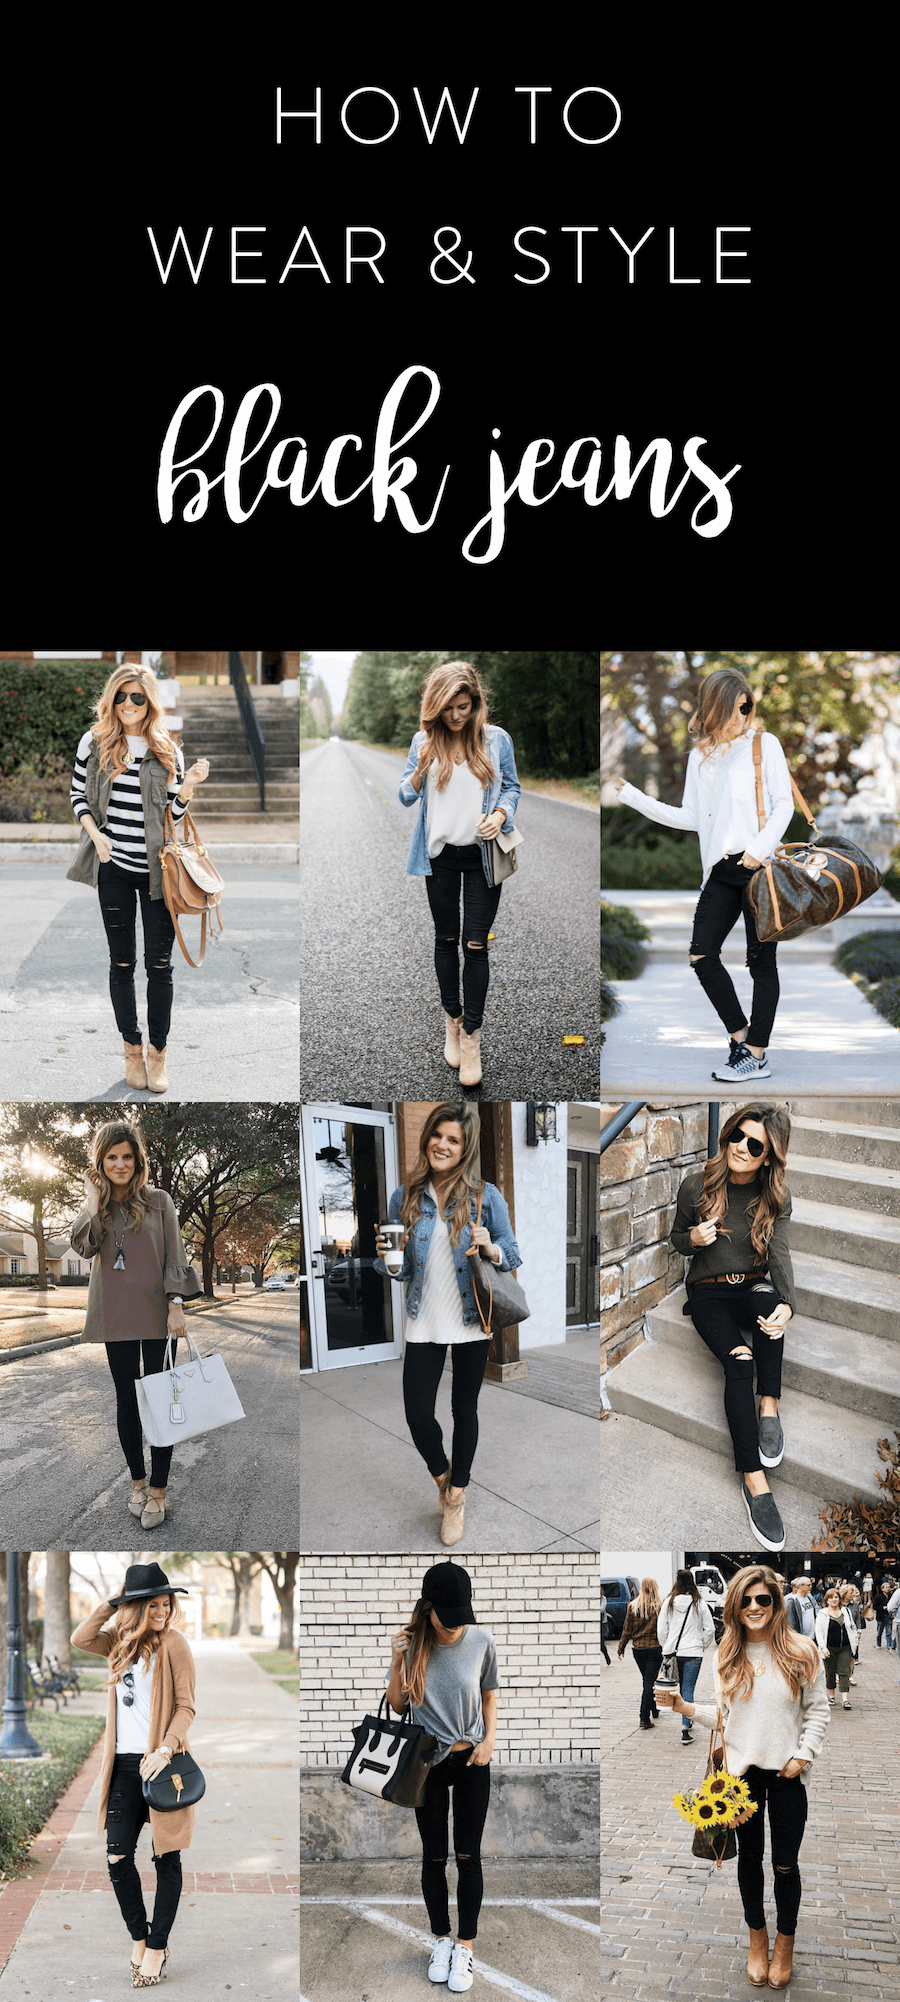 7b1d6874be6c What to wear with black jeans - 30+ Black Jeans Outfit Ideas